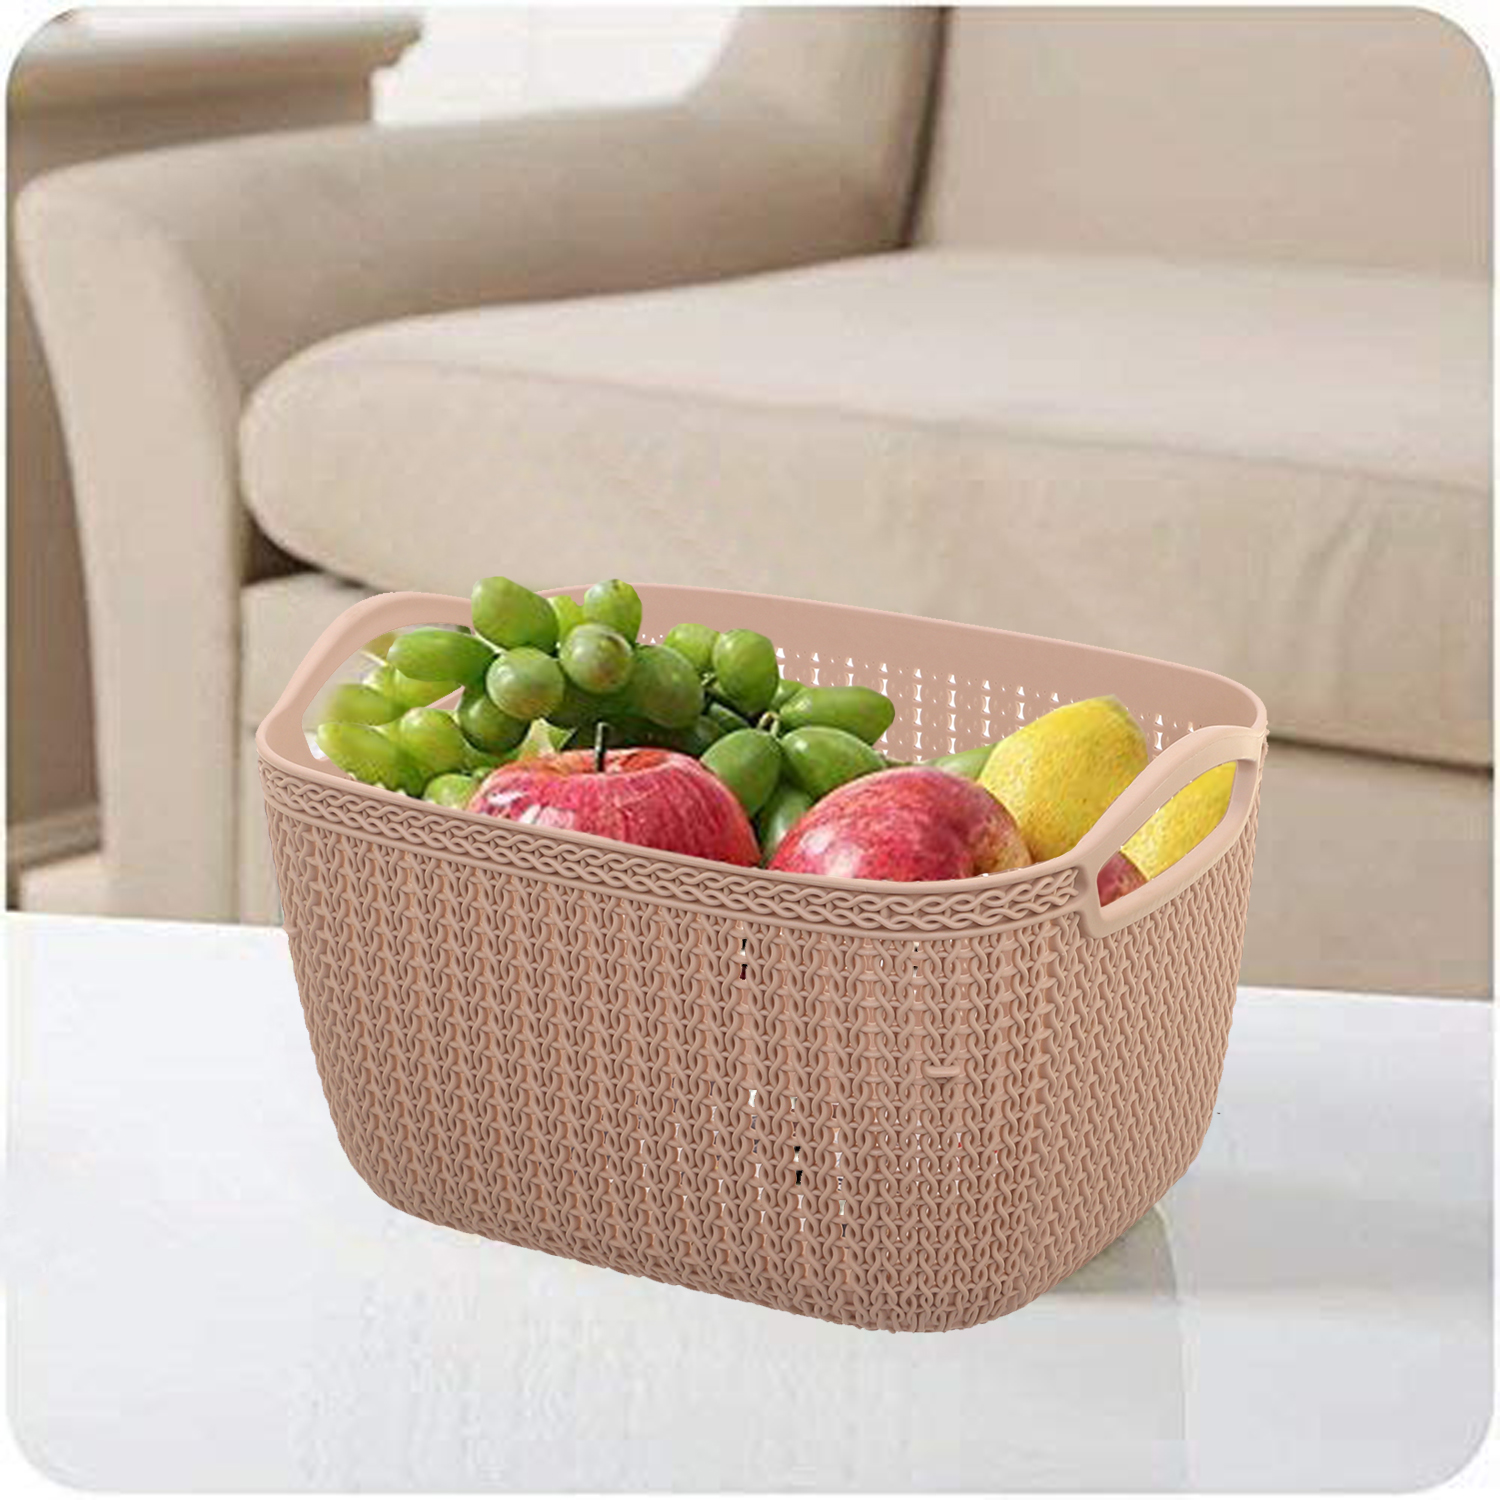 Kuber Industries Unbreakable Plastic 2 Pieces Multipurpose Large Size Flexible Storage Baskets/Fruit Vegetable Kitchen Organizer with Handles (peach) - CTKTC30618